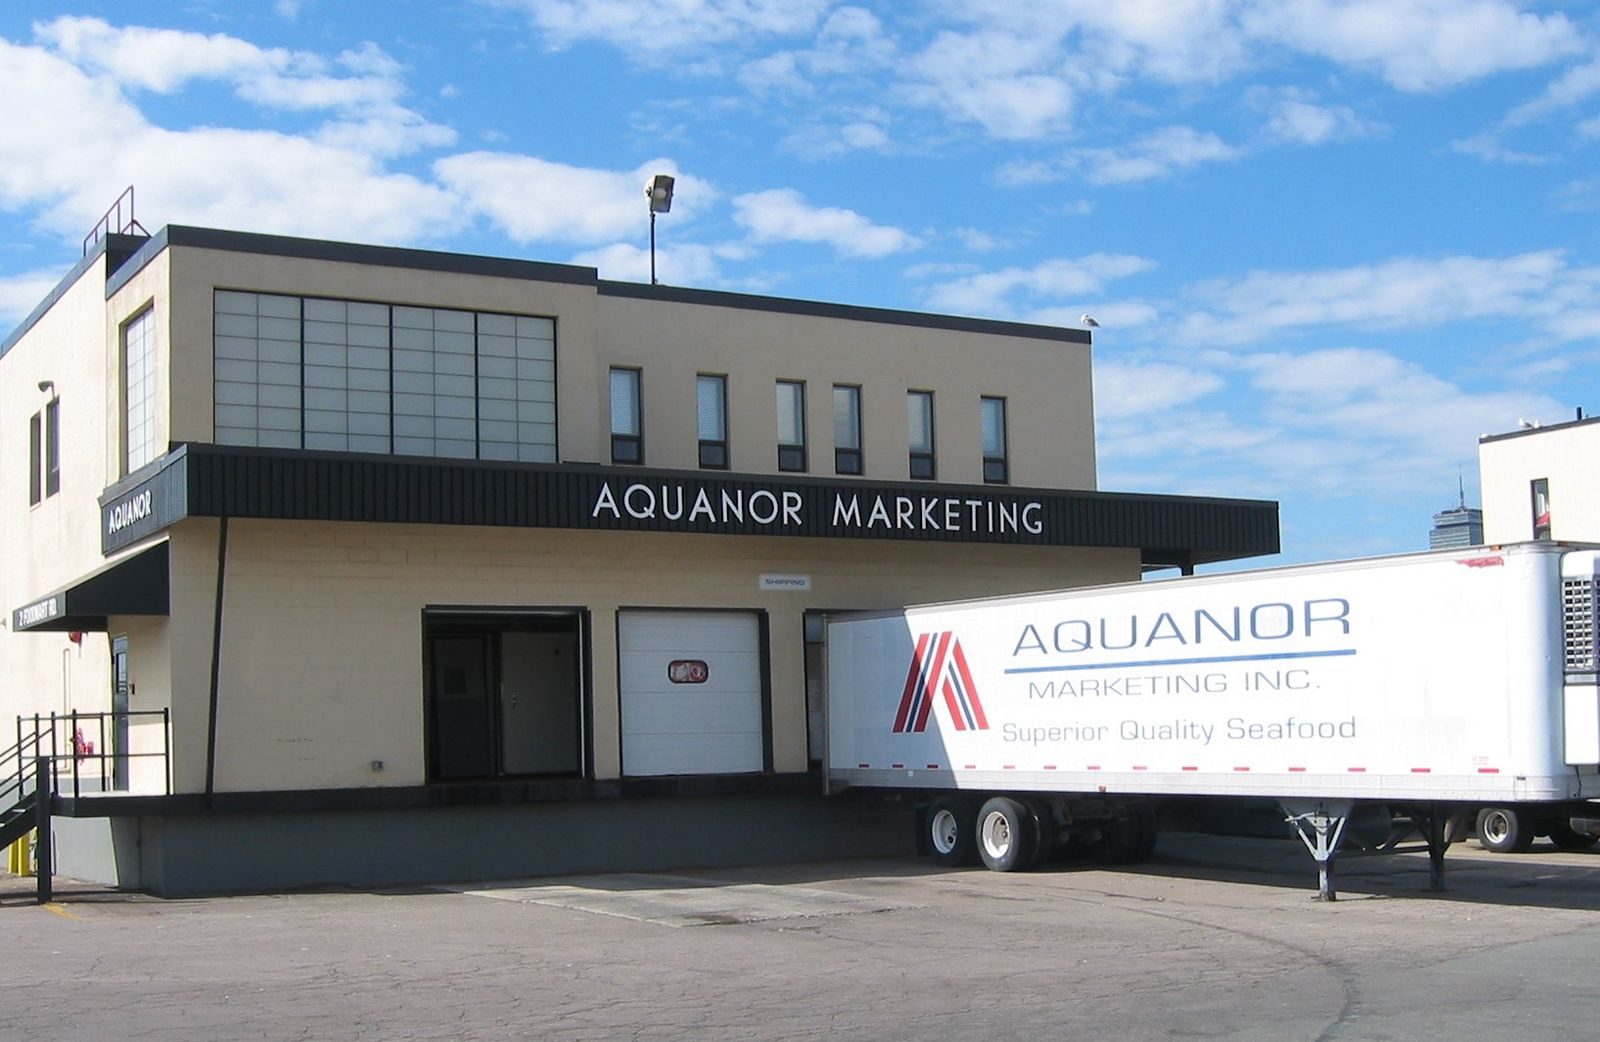 Aquanor Marketing, Inc. and Samherji Hf. Formalize Long Standing Partnership